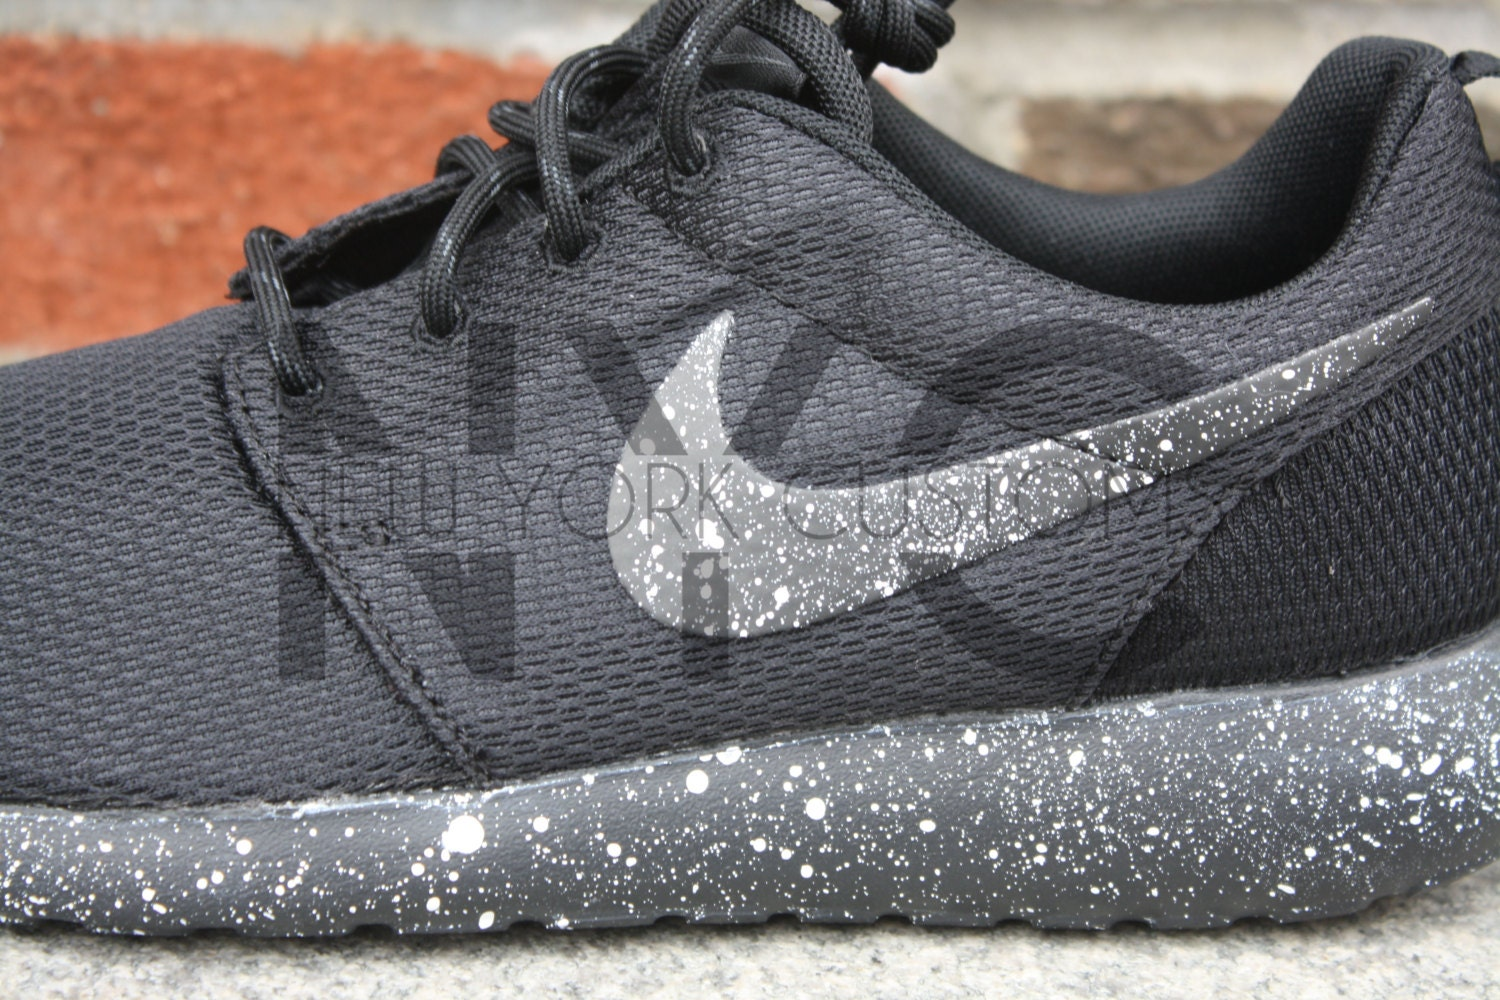 7110d73f51a Nike Roshe One Run Black White Splatter Oreo Speckled by NYCustoms low-cost